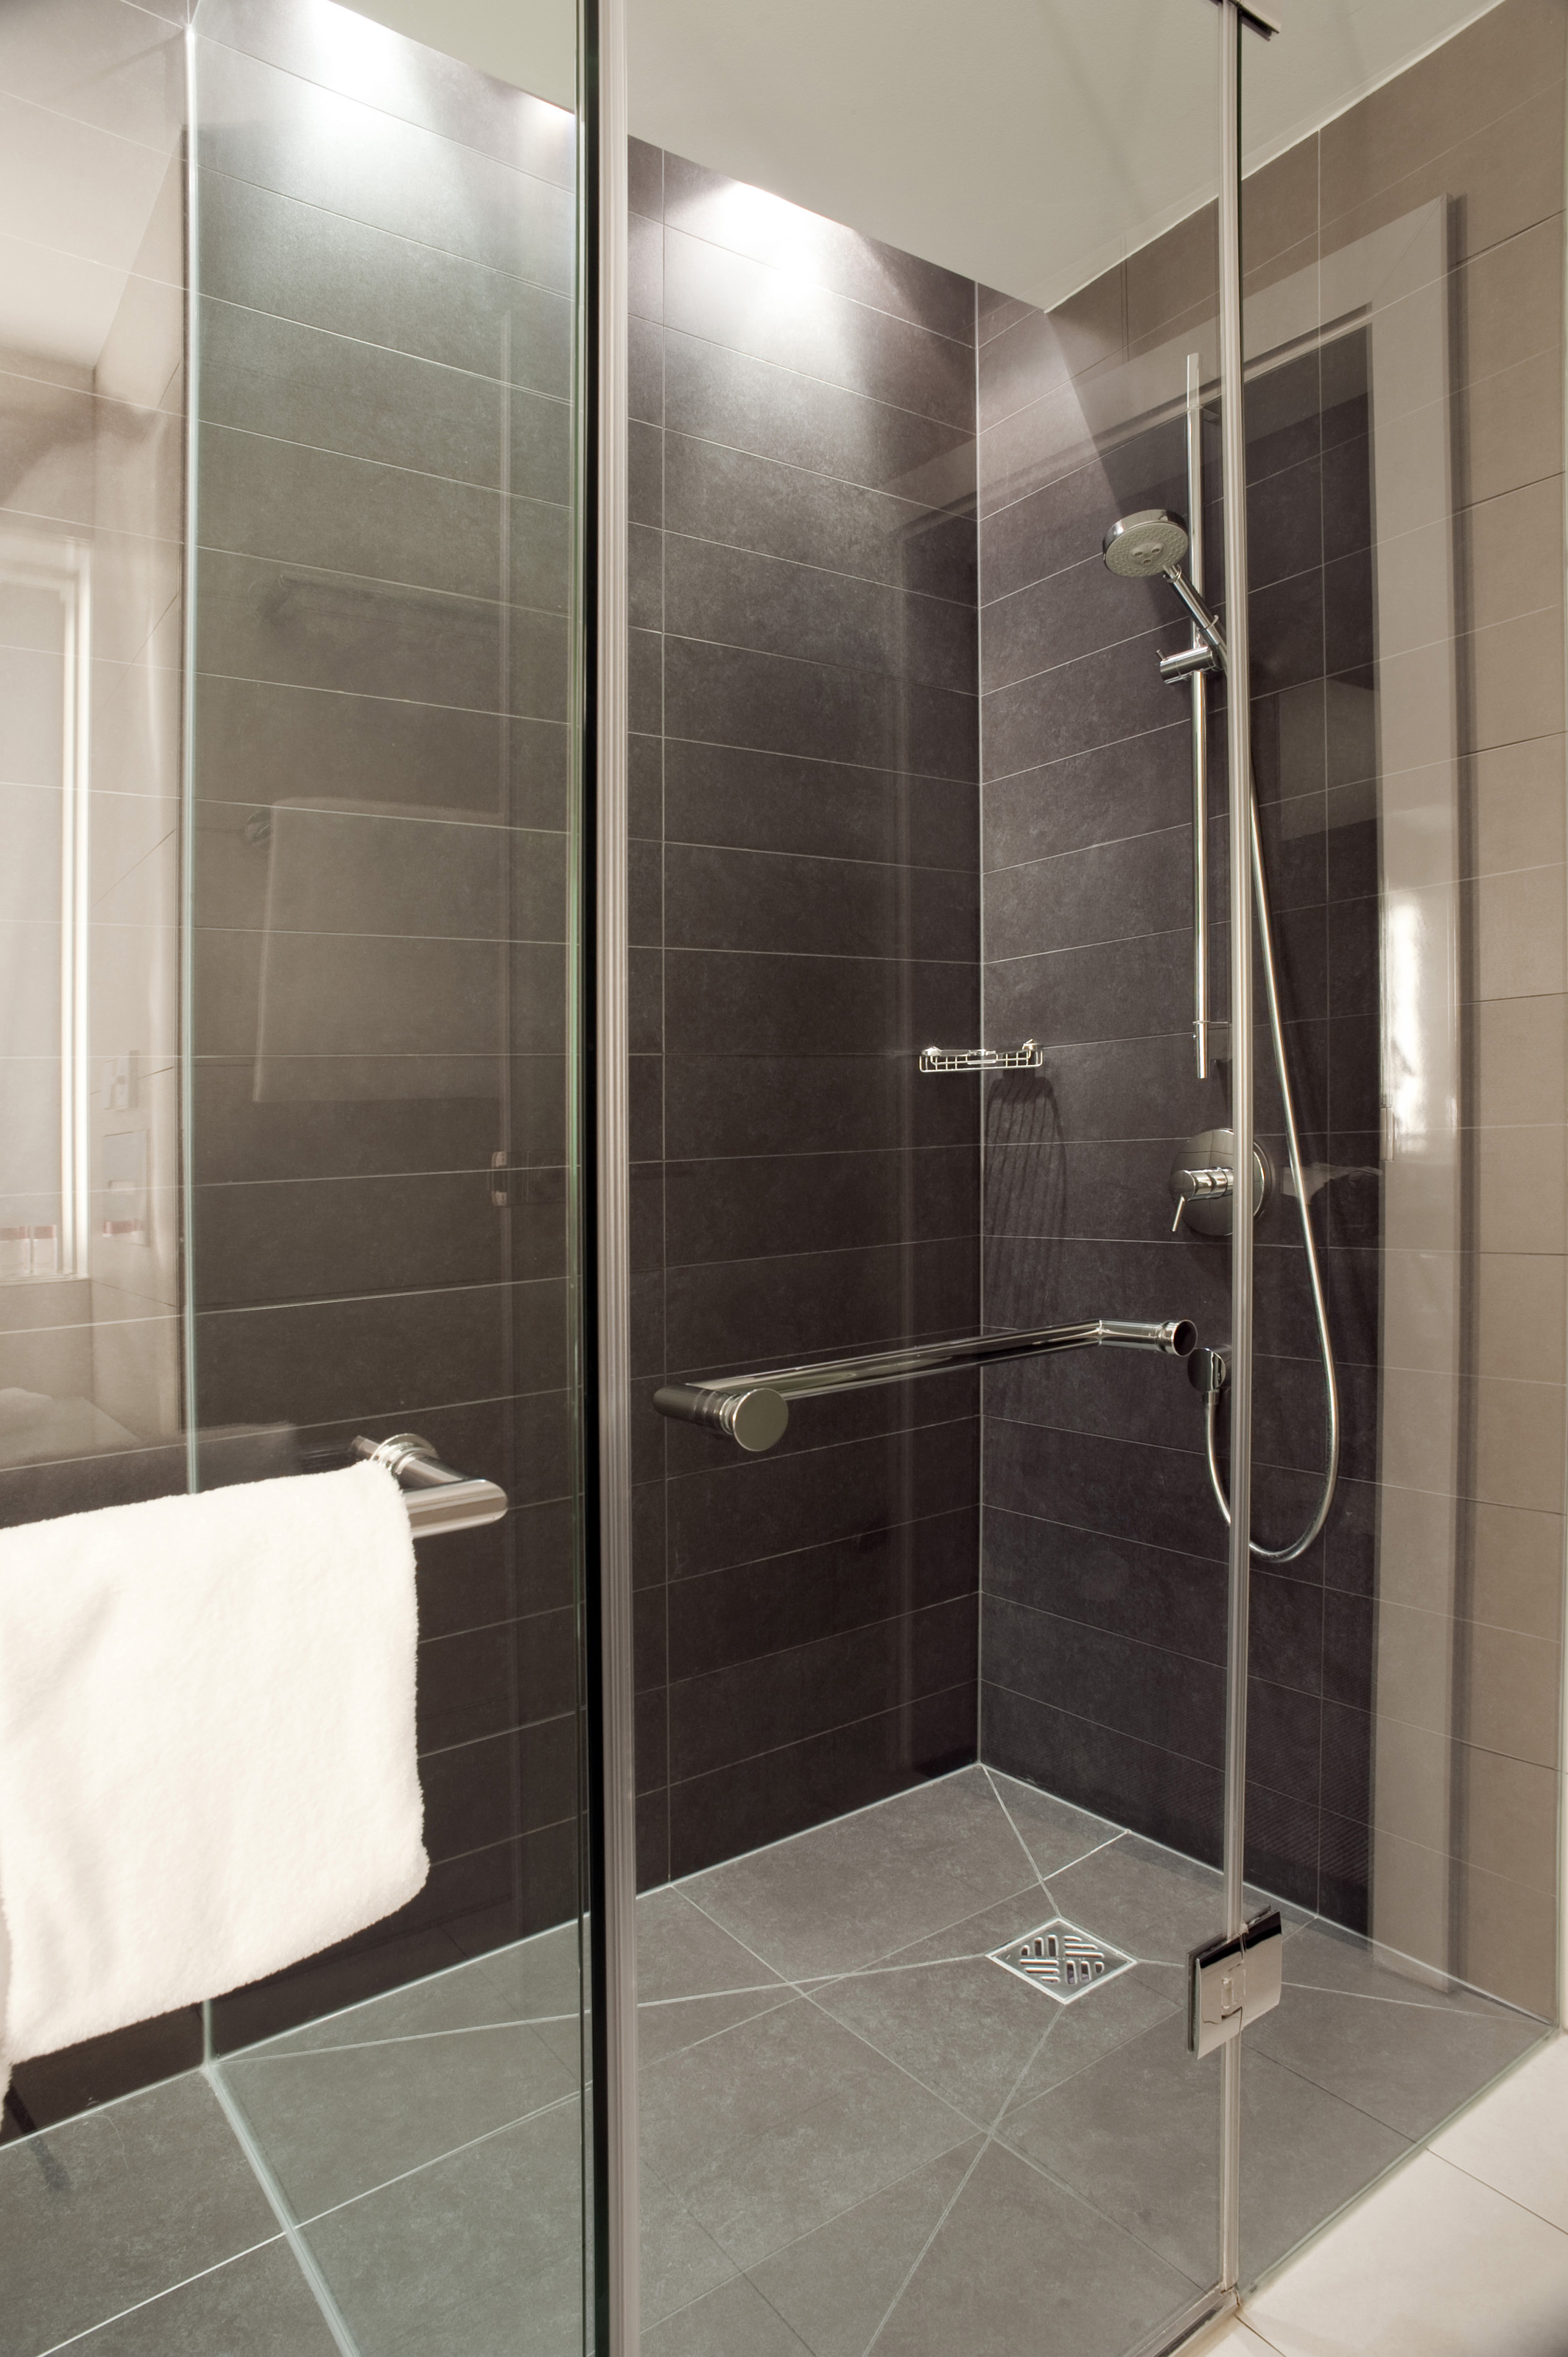 Free Stock Photo 6930 Glass shower cubicle | freeimageslive